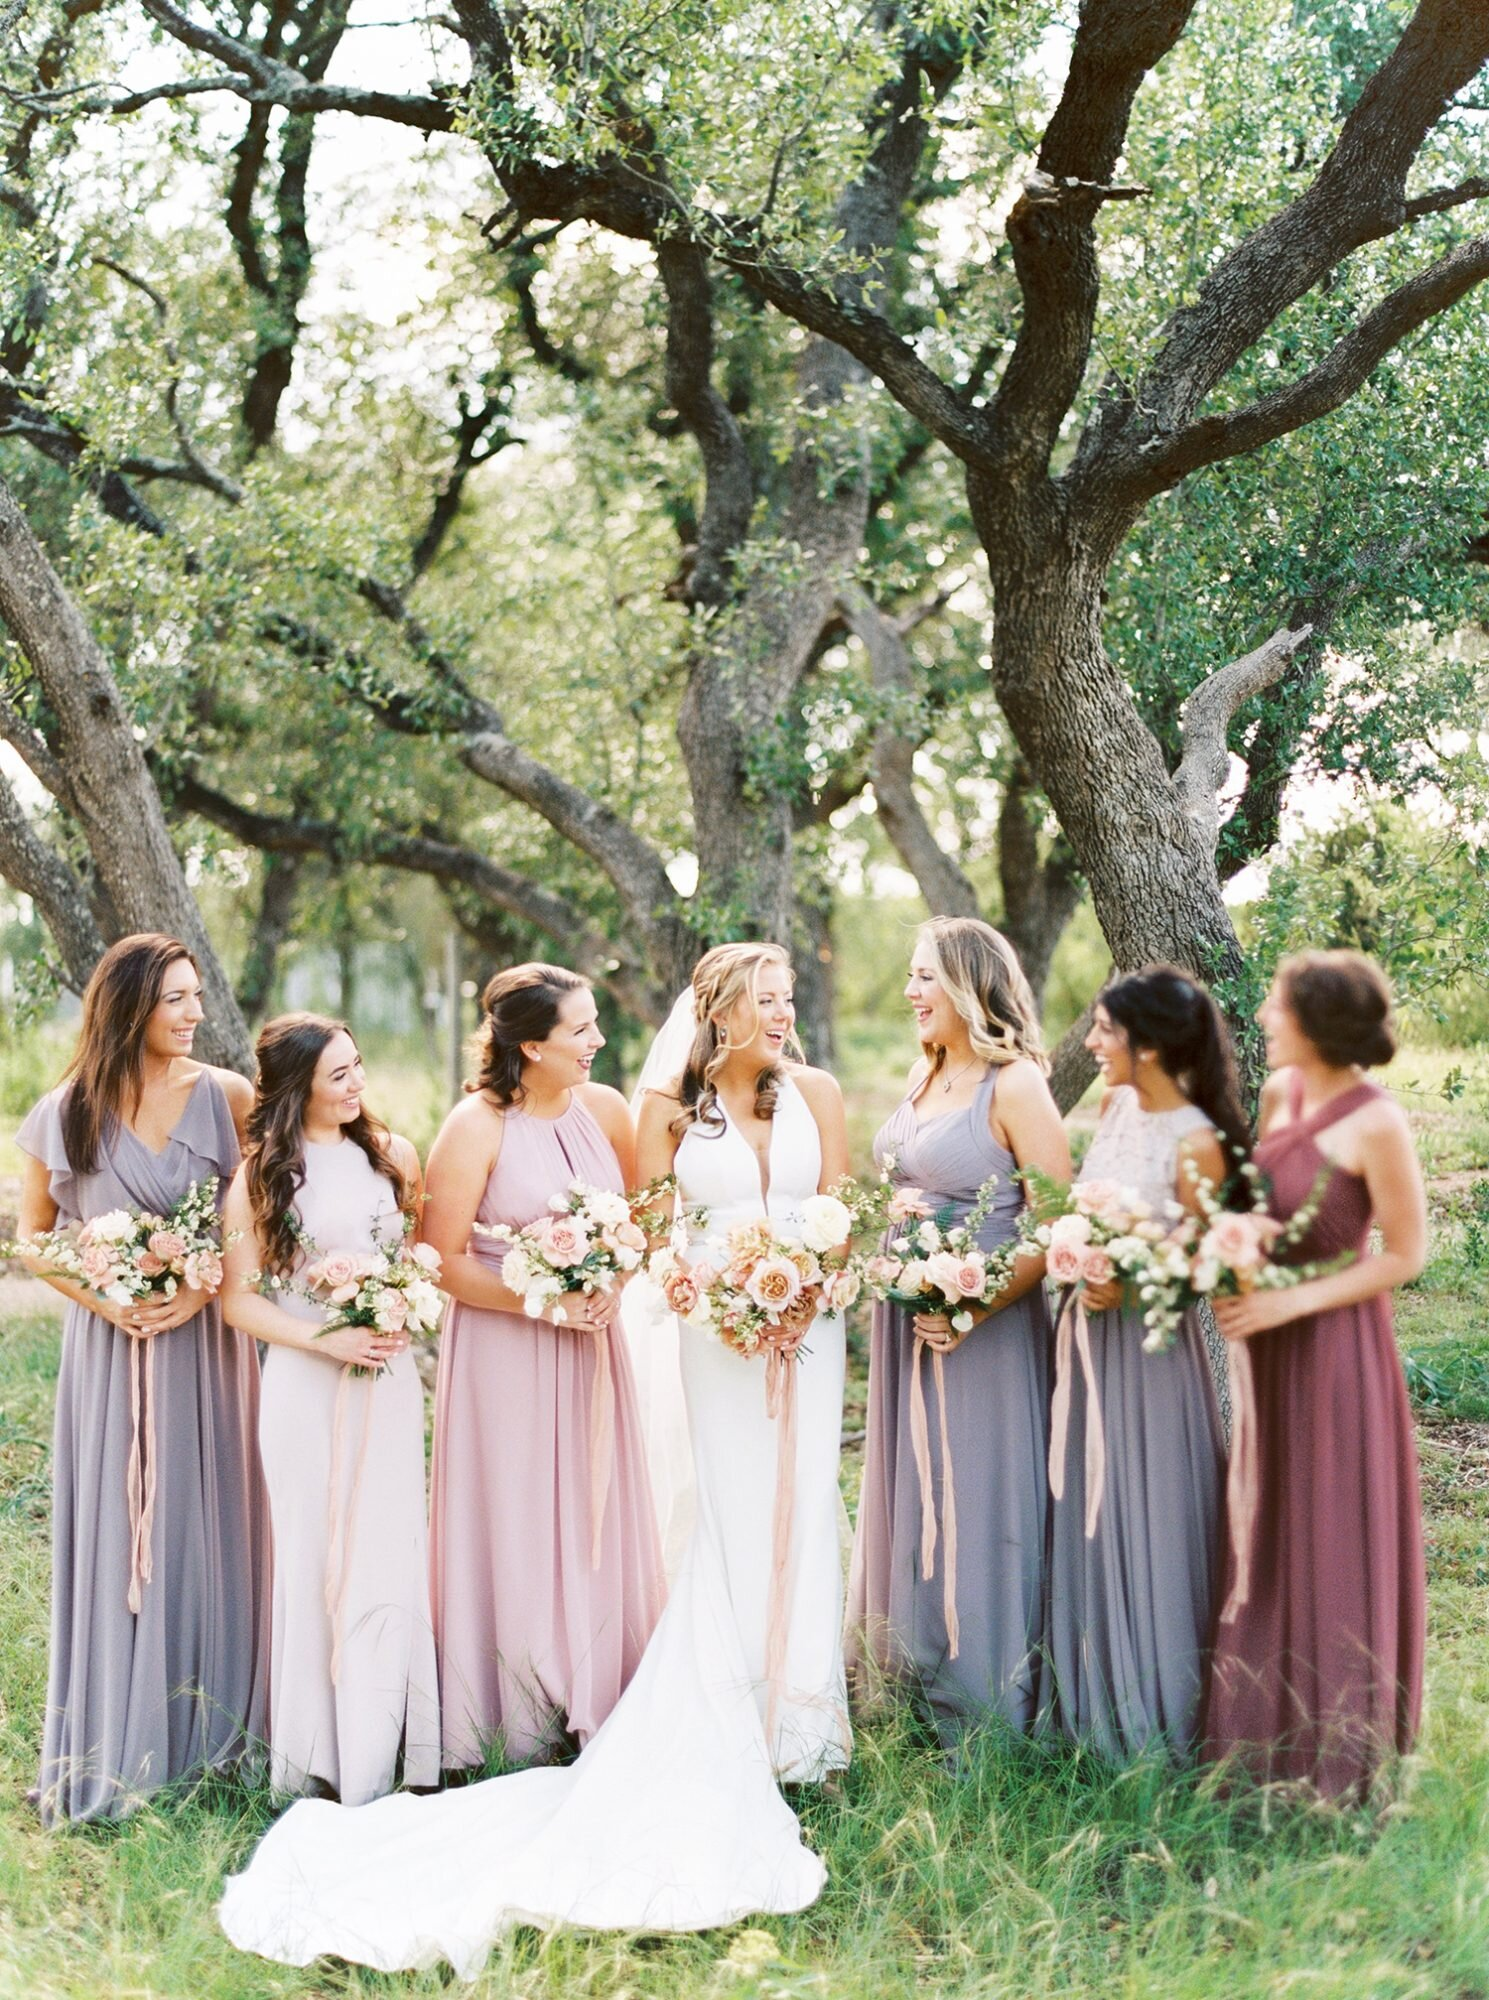 These Will Be the Most Popular Bridesmaids' Dress Colors in 20 ...